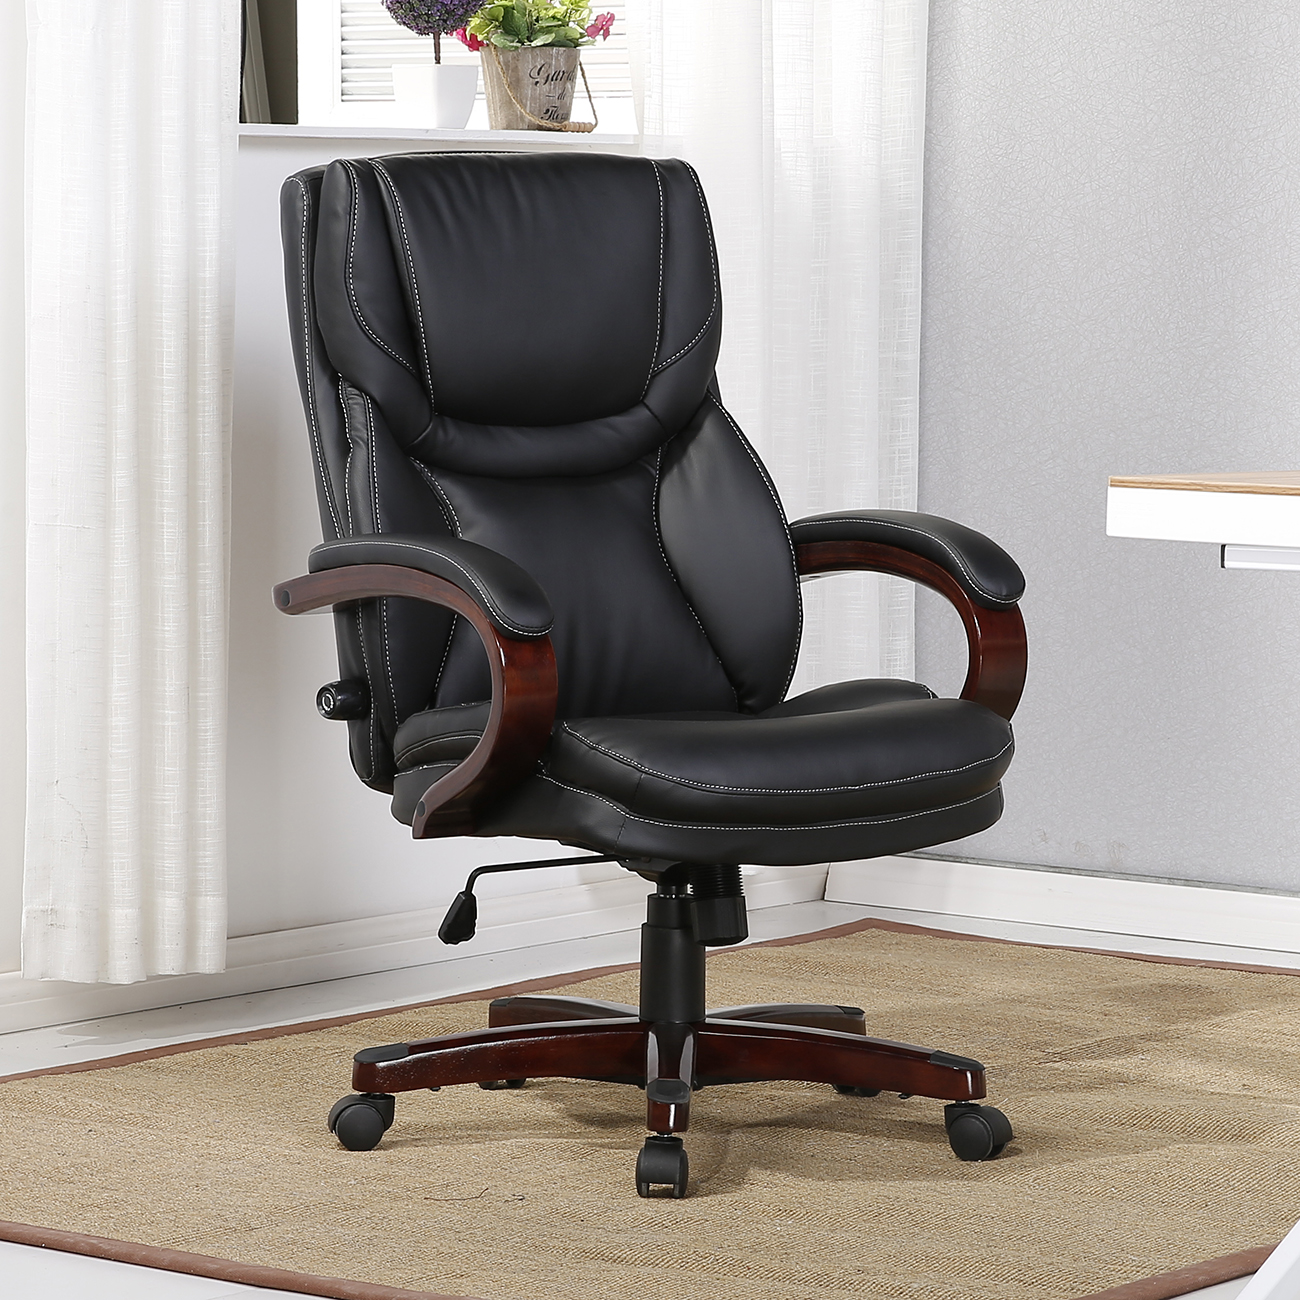 executive chair high back office desk arm lumbar support leather black brown ebay. Black Bedroom Furniture Sets. Home Design Ideas